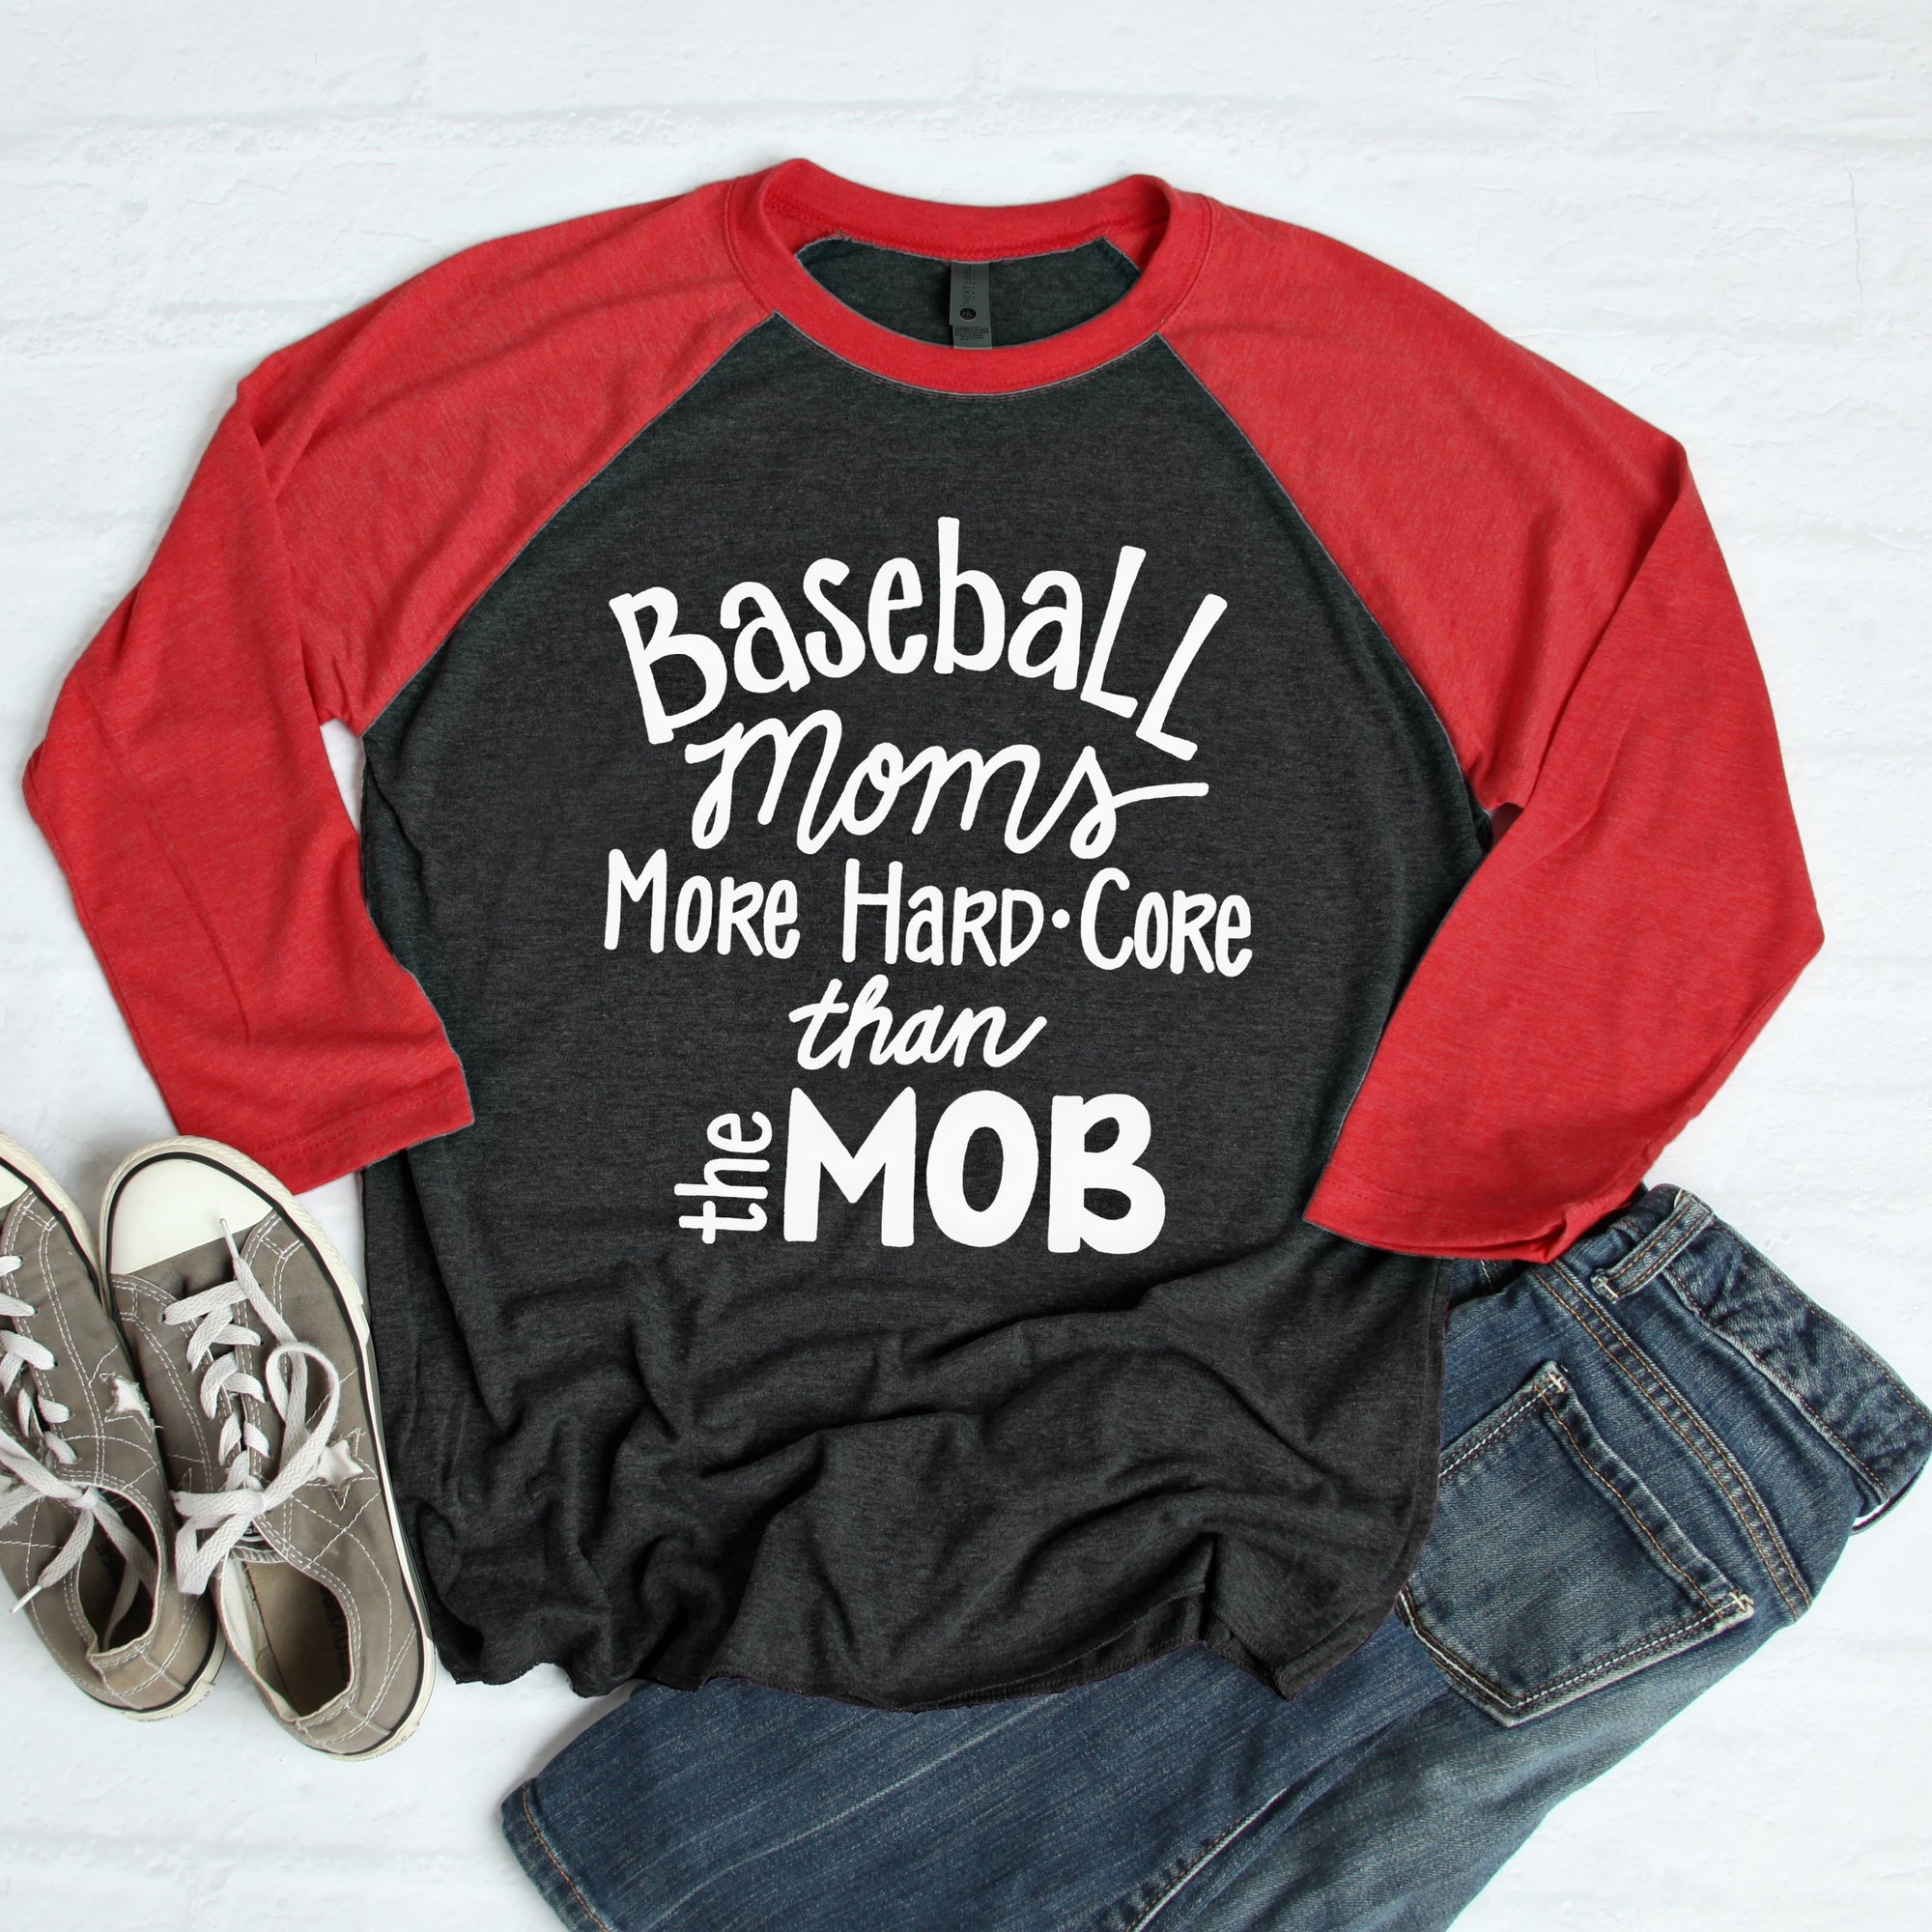 Funny Baseball Mom SVG File, Baseball Mom Mob SVG File, Baseball Mom Sayings Vinyl, Baseball Mom Shirt SVG Cut Files, SVG FILES for Cricut